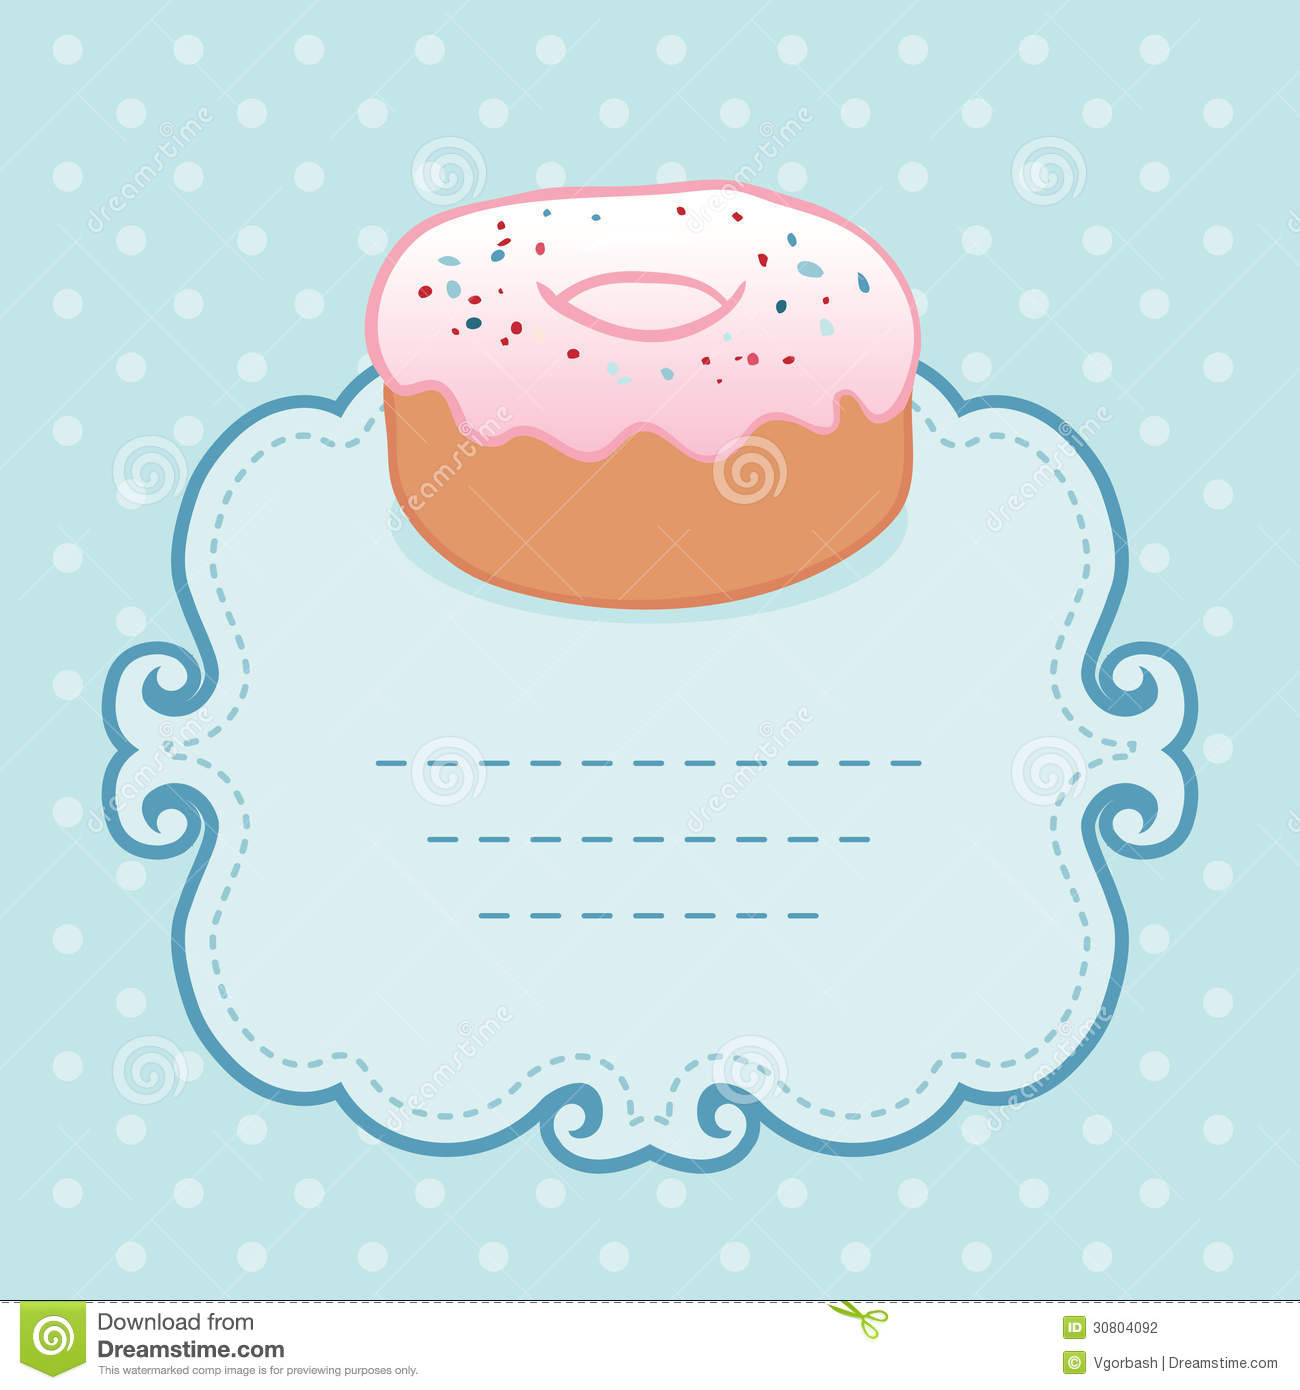 Tea Party Invitation Vintage Style Frame With Donut Stock ...